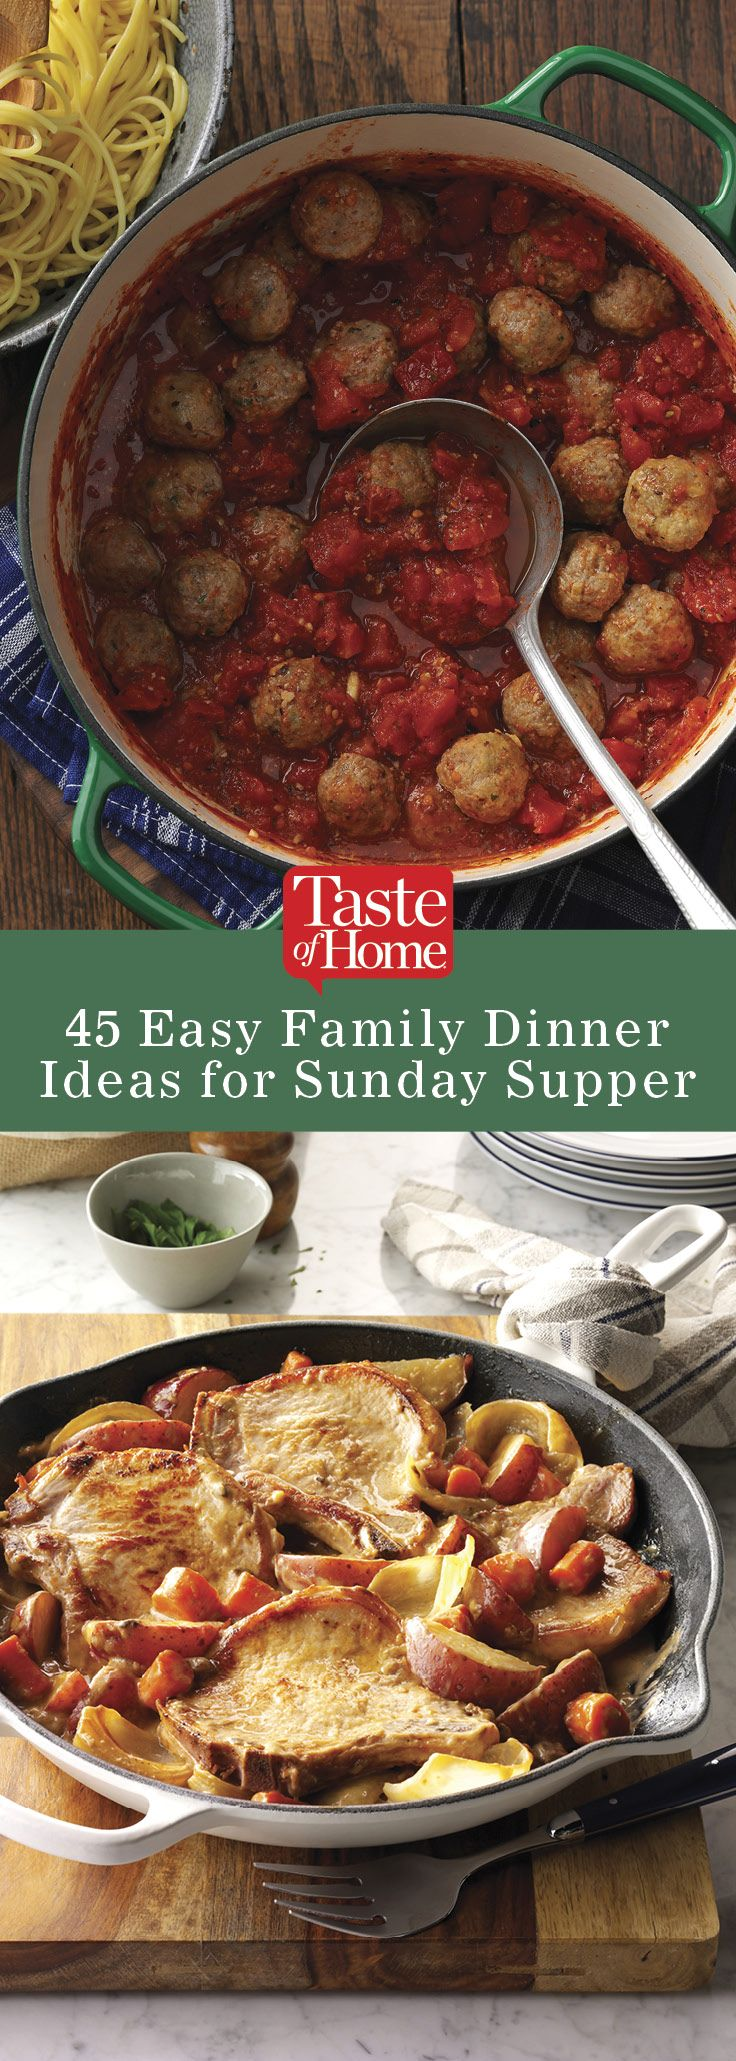 45 Simple Sunday Supper Ideas